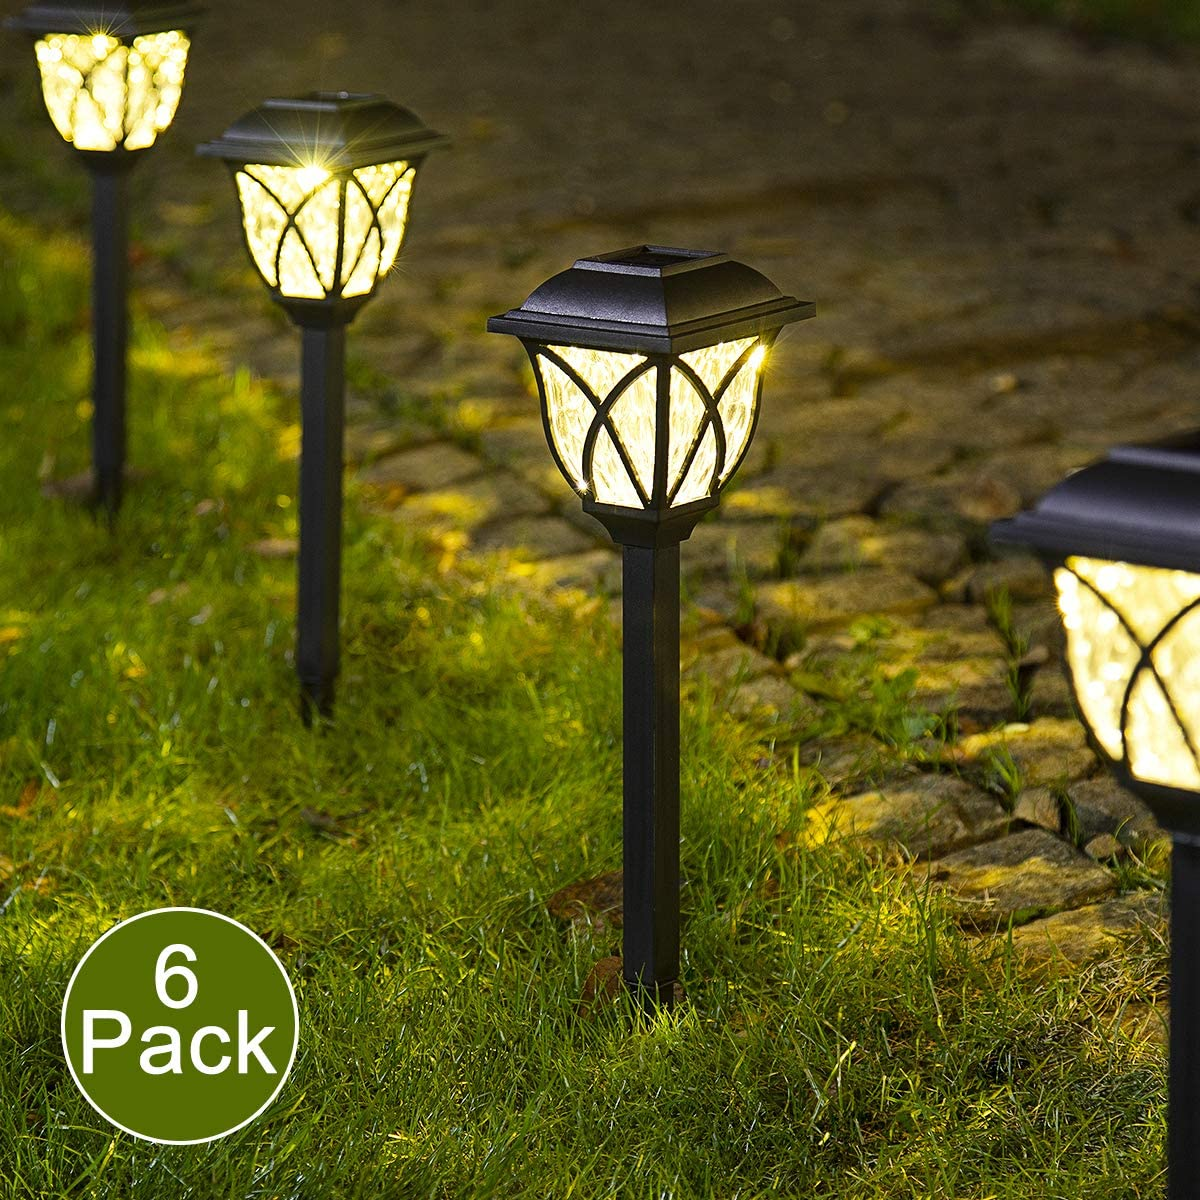 Solpex Solar Pathway Lights Outdoor, LED Solar Garden Lights, Waterproof Solar Landscape Lights for Lawn